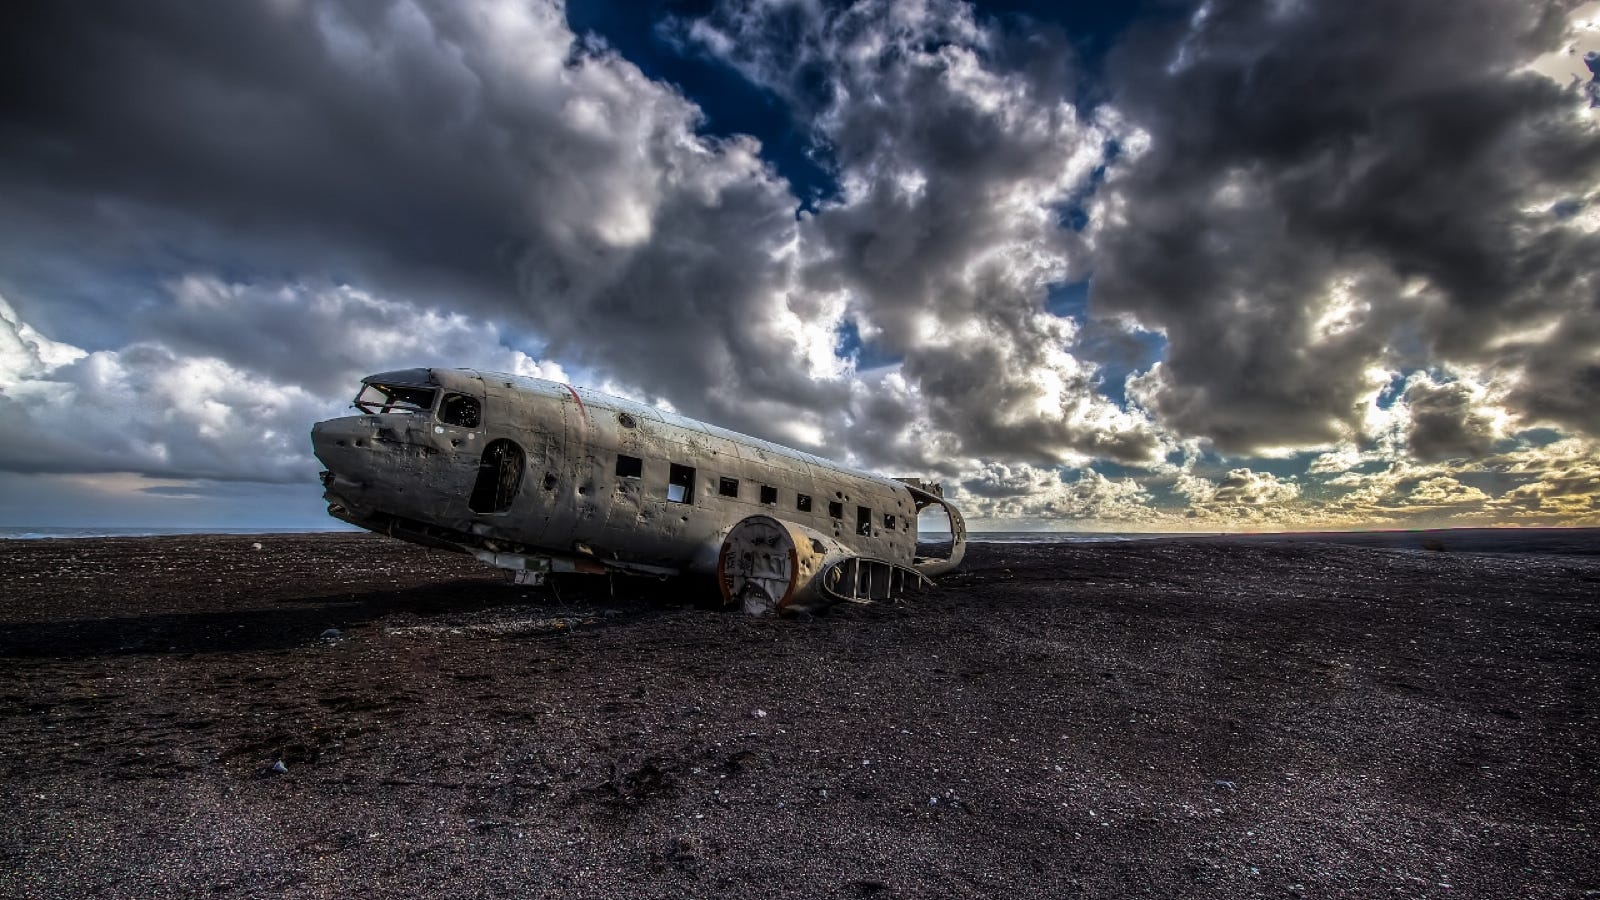 aircraft accident photography See photos, profile pictures and albums from aviation accidents.